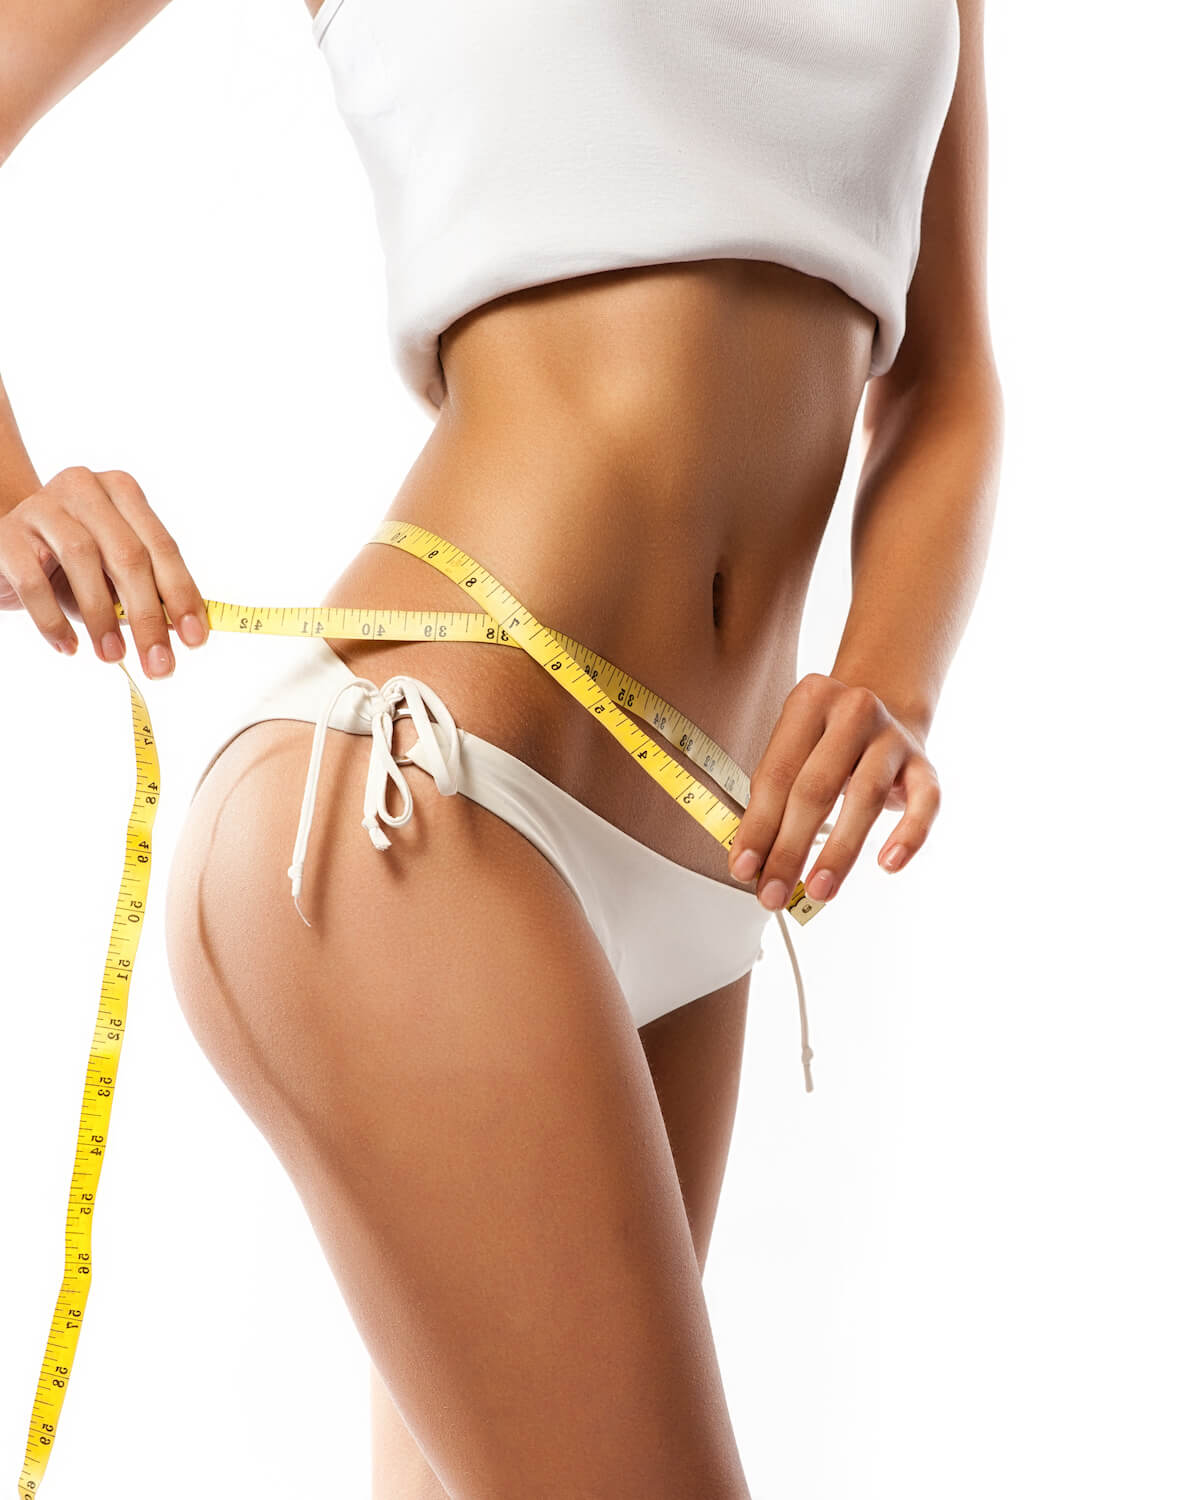 woman measuring her body contouring weight loss 2